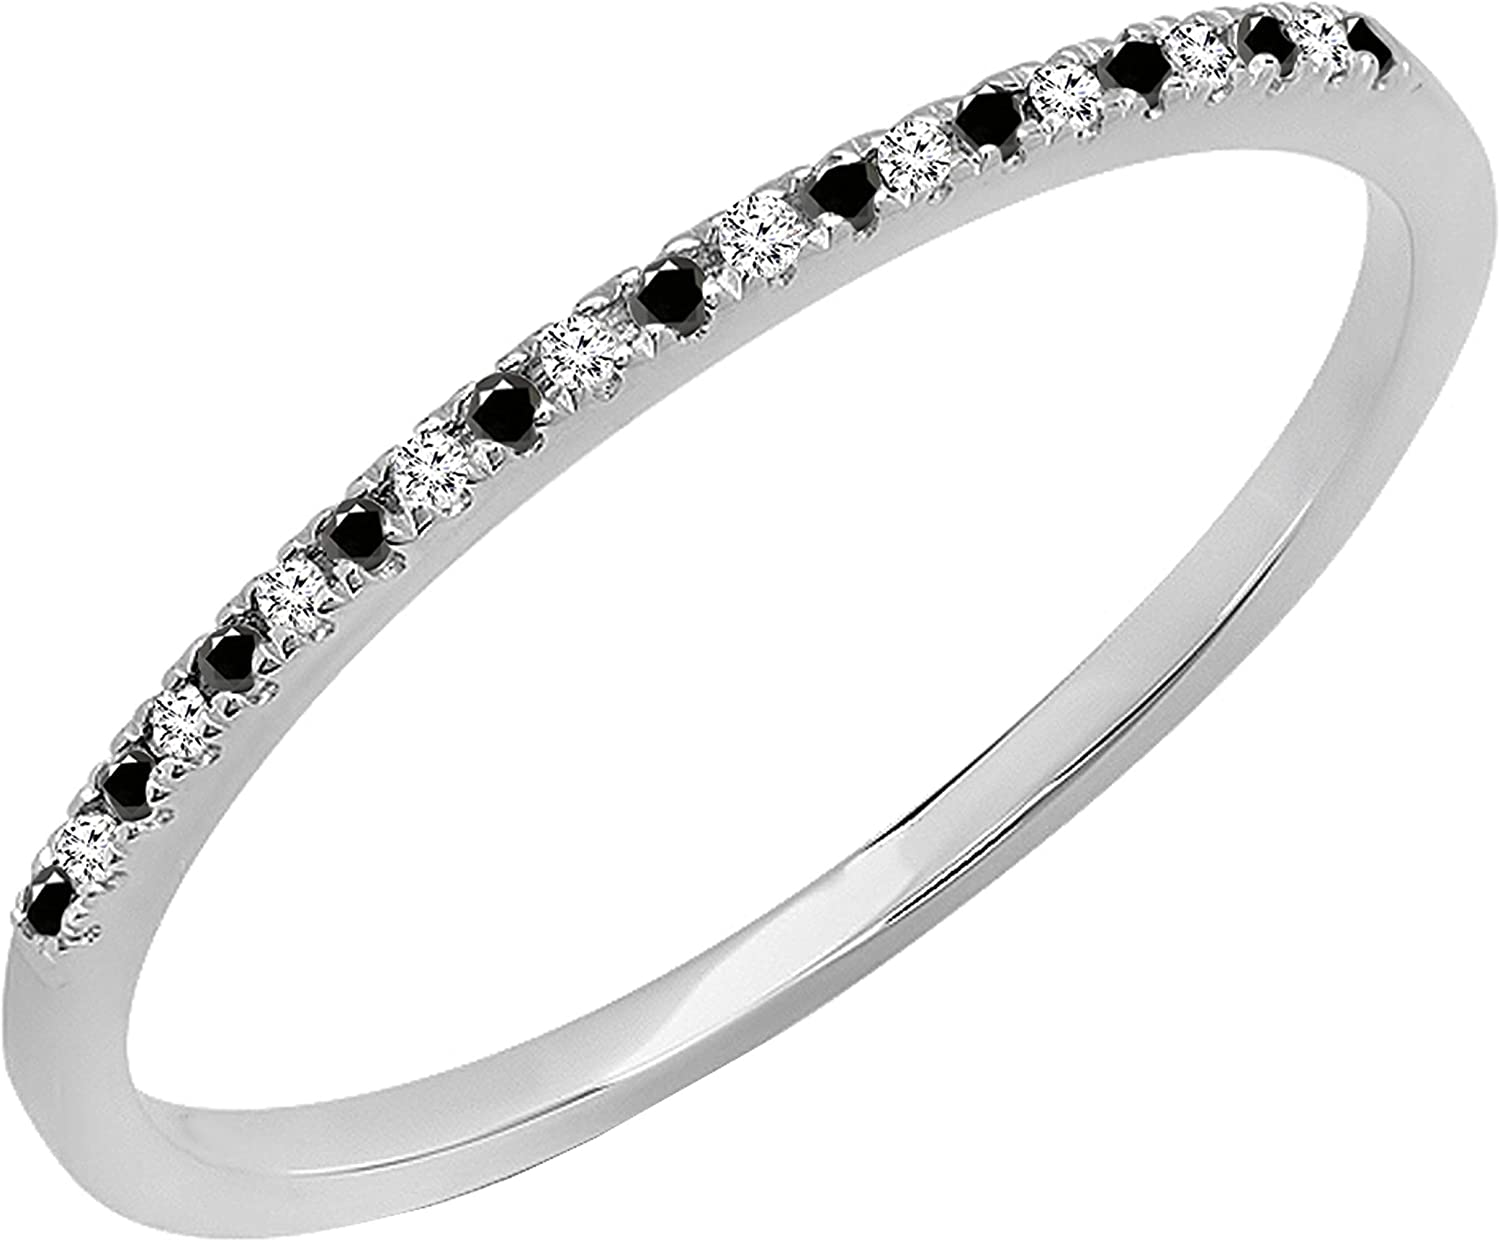 Dazzlingrock Collection 0.08 Carat (ctw) Round Black & White Diamond Dainty Anniversary Stackable Wedding Band, Available Metal in 10K/14K/18K Gold